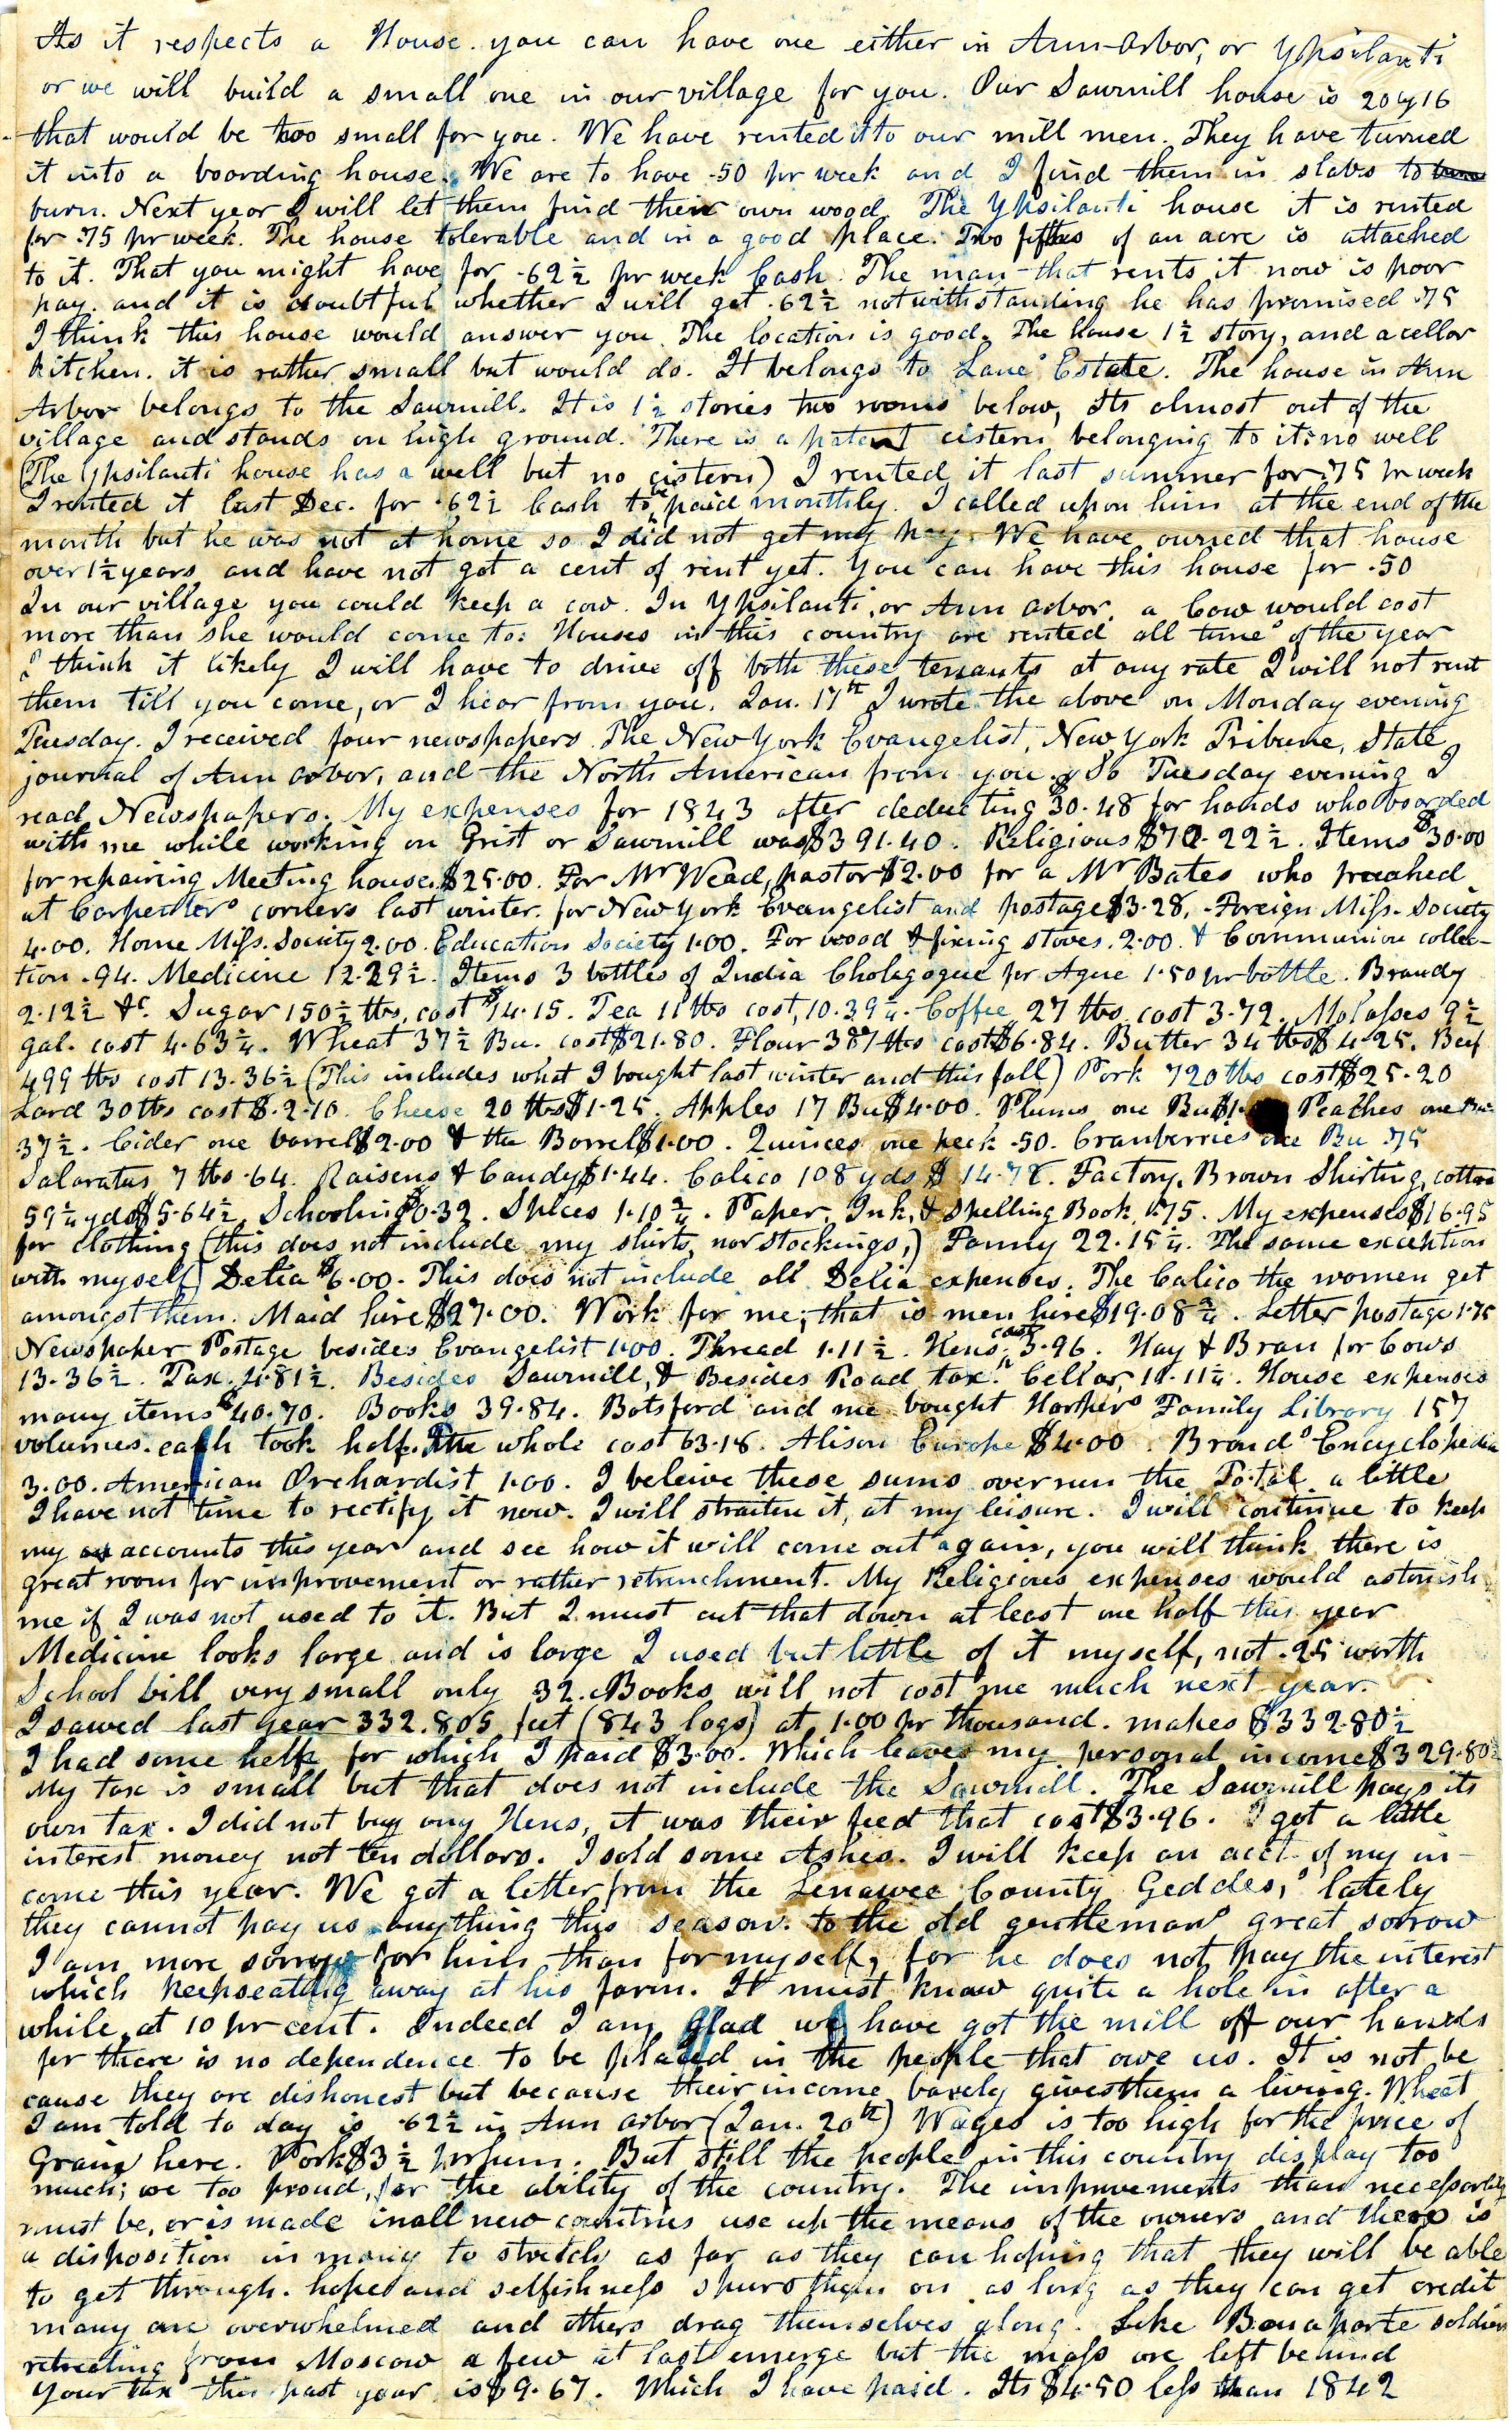 Letter From John Geddes to William Geddes, January 24, 1844 image